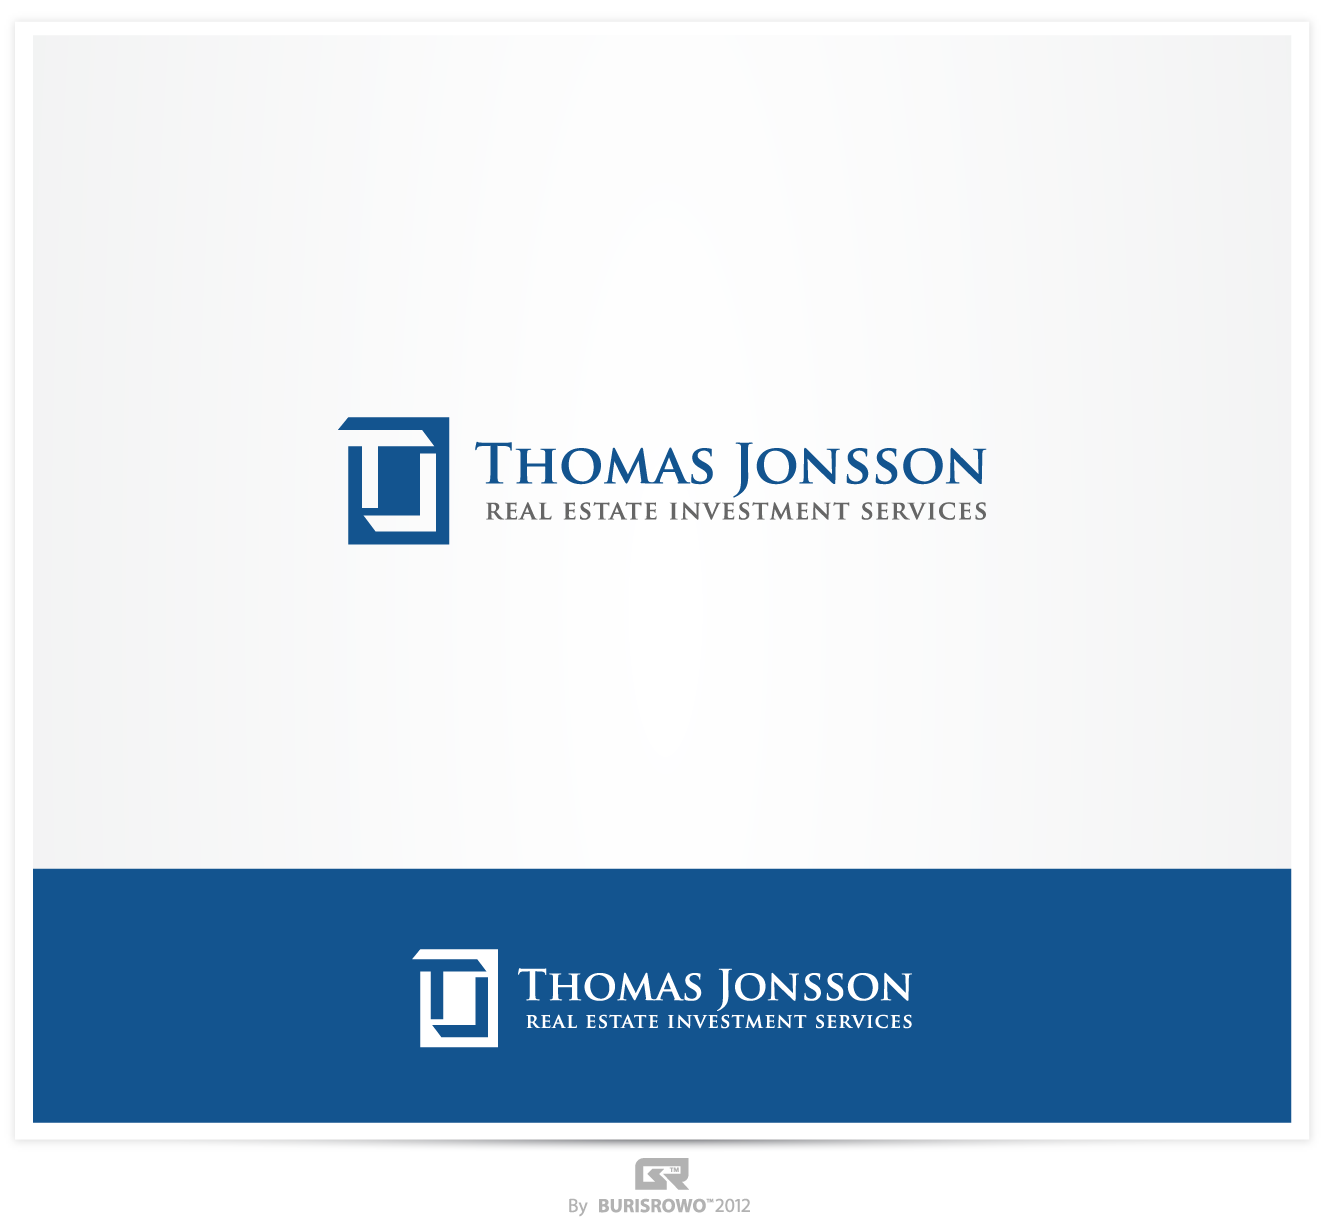 Help Thomas Jonsson real estate investment services with a new logo